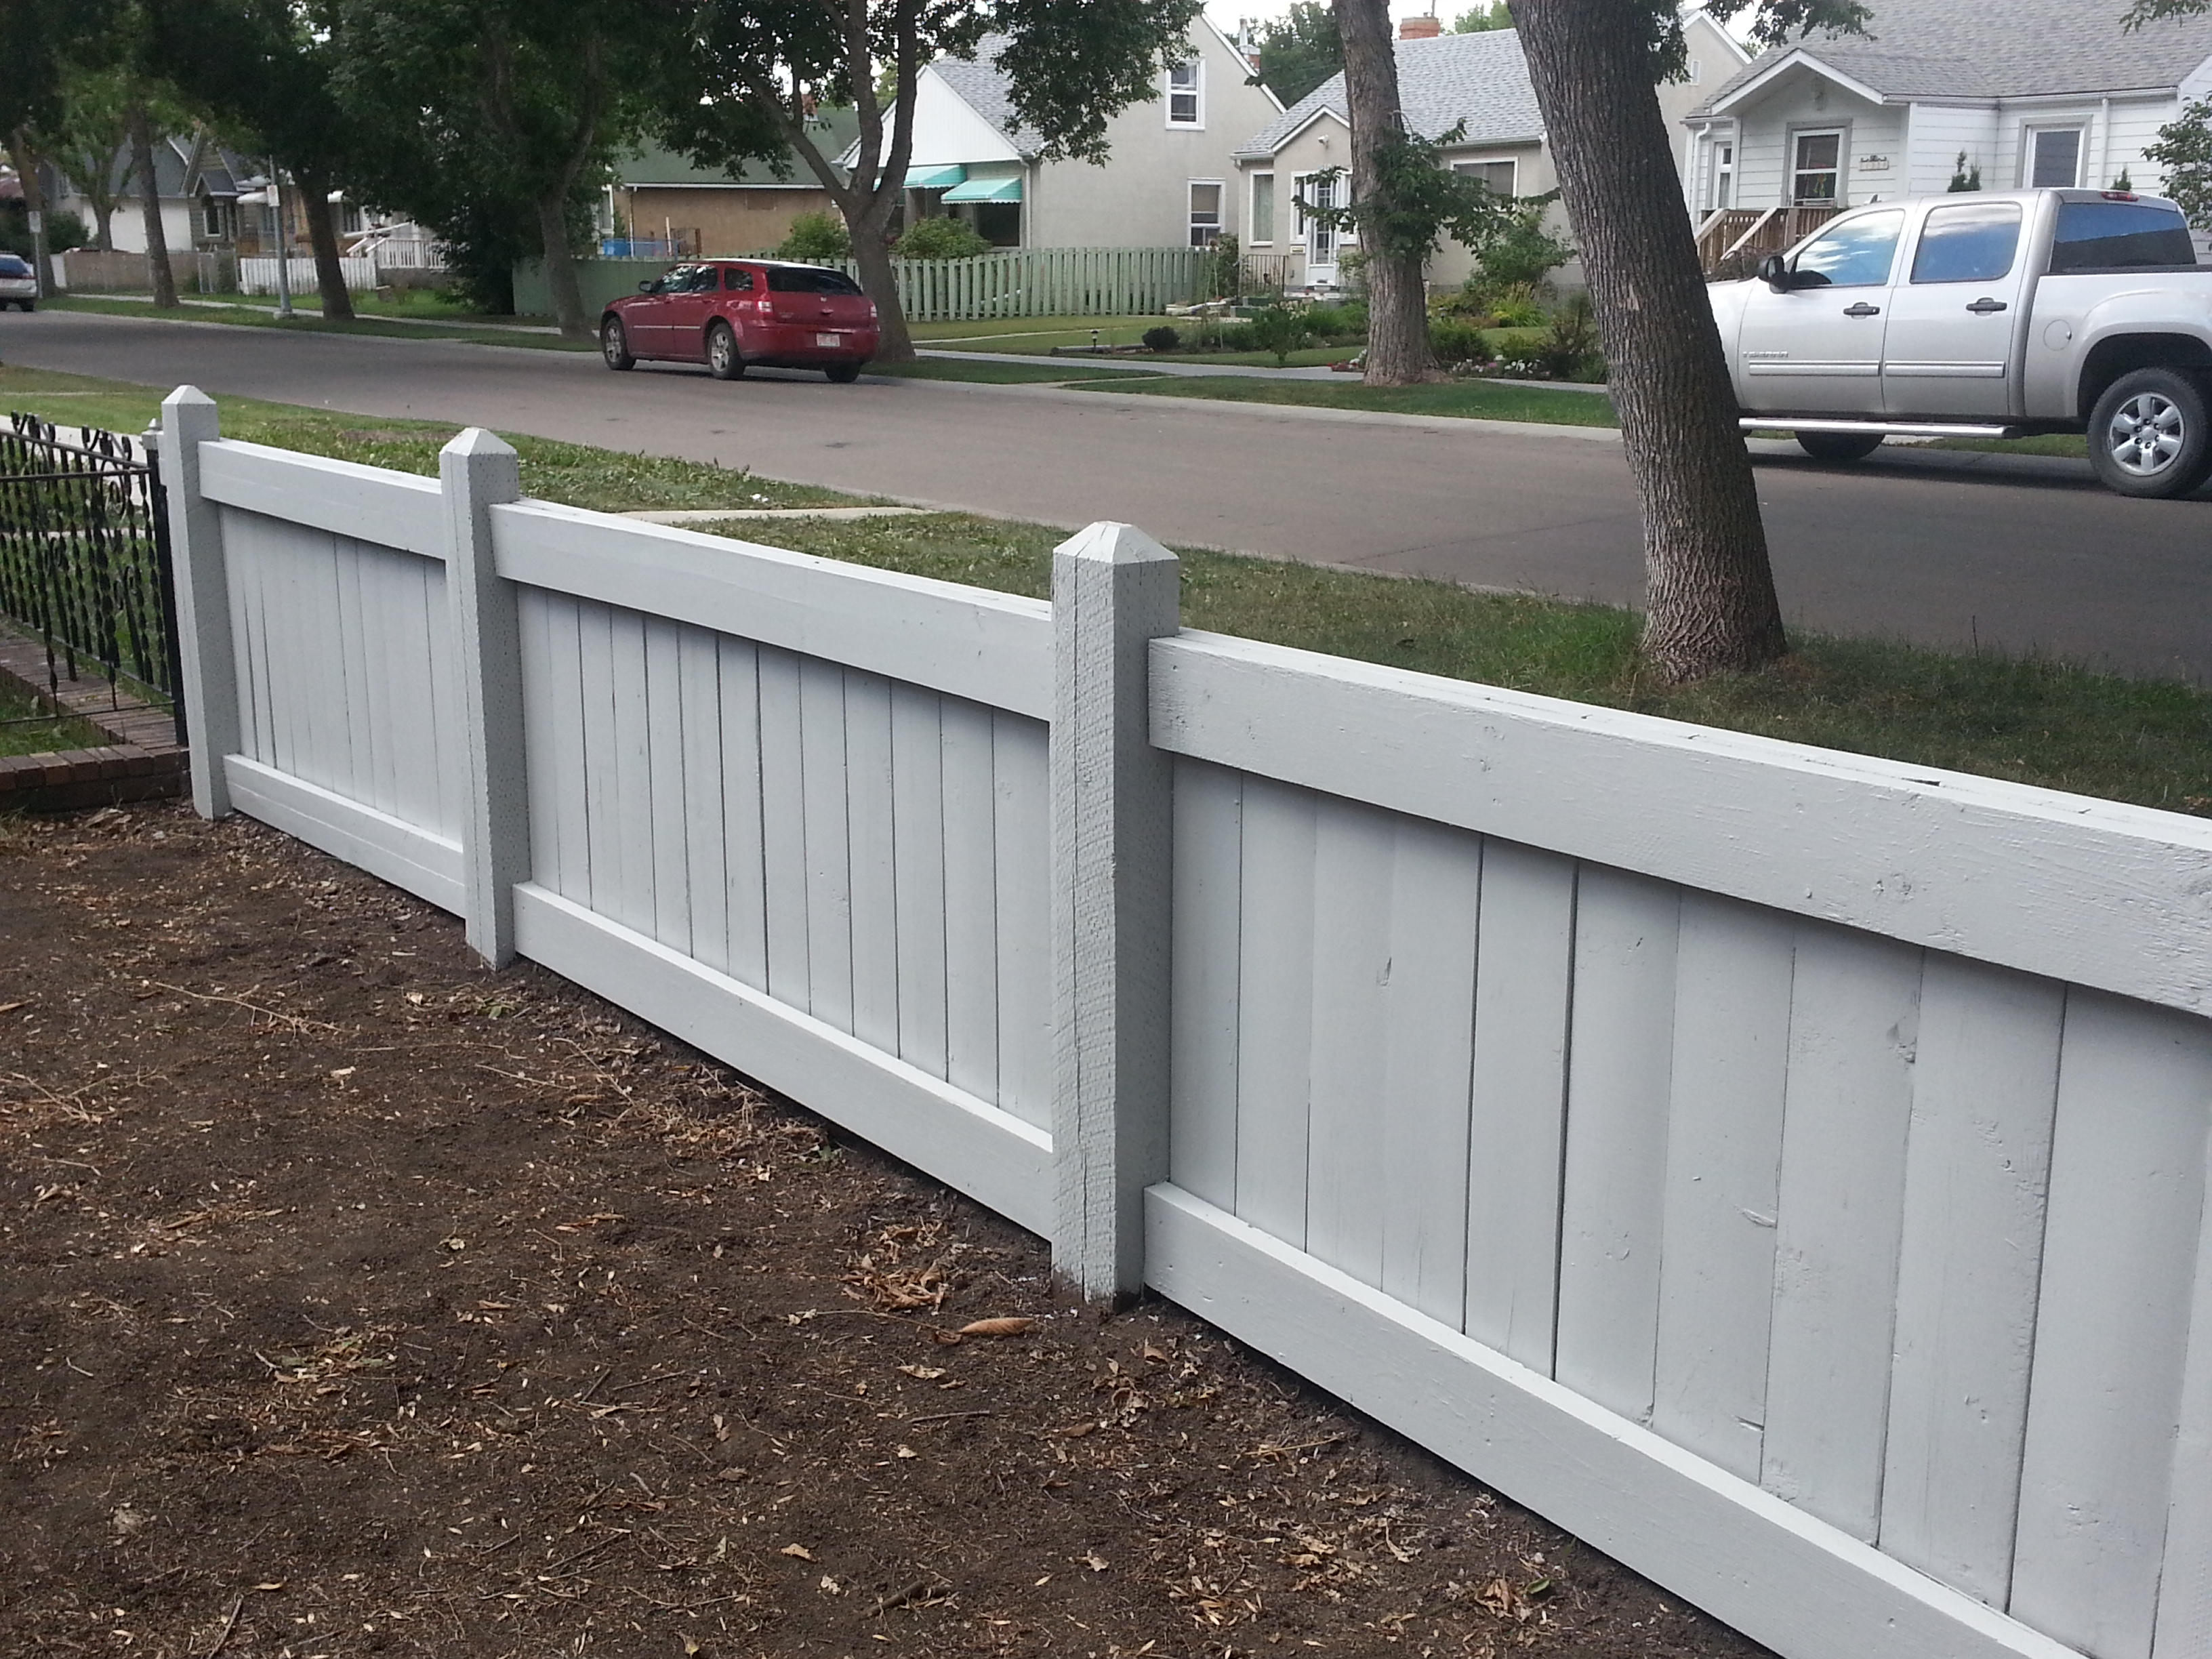 Pretty newly-stained fence